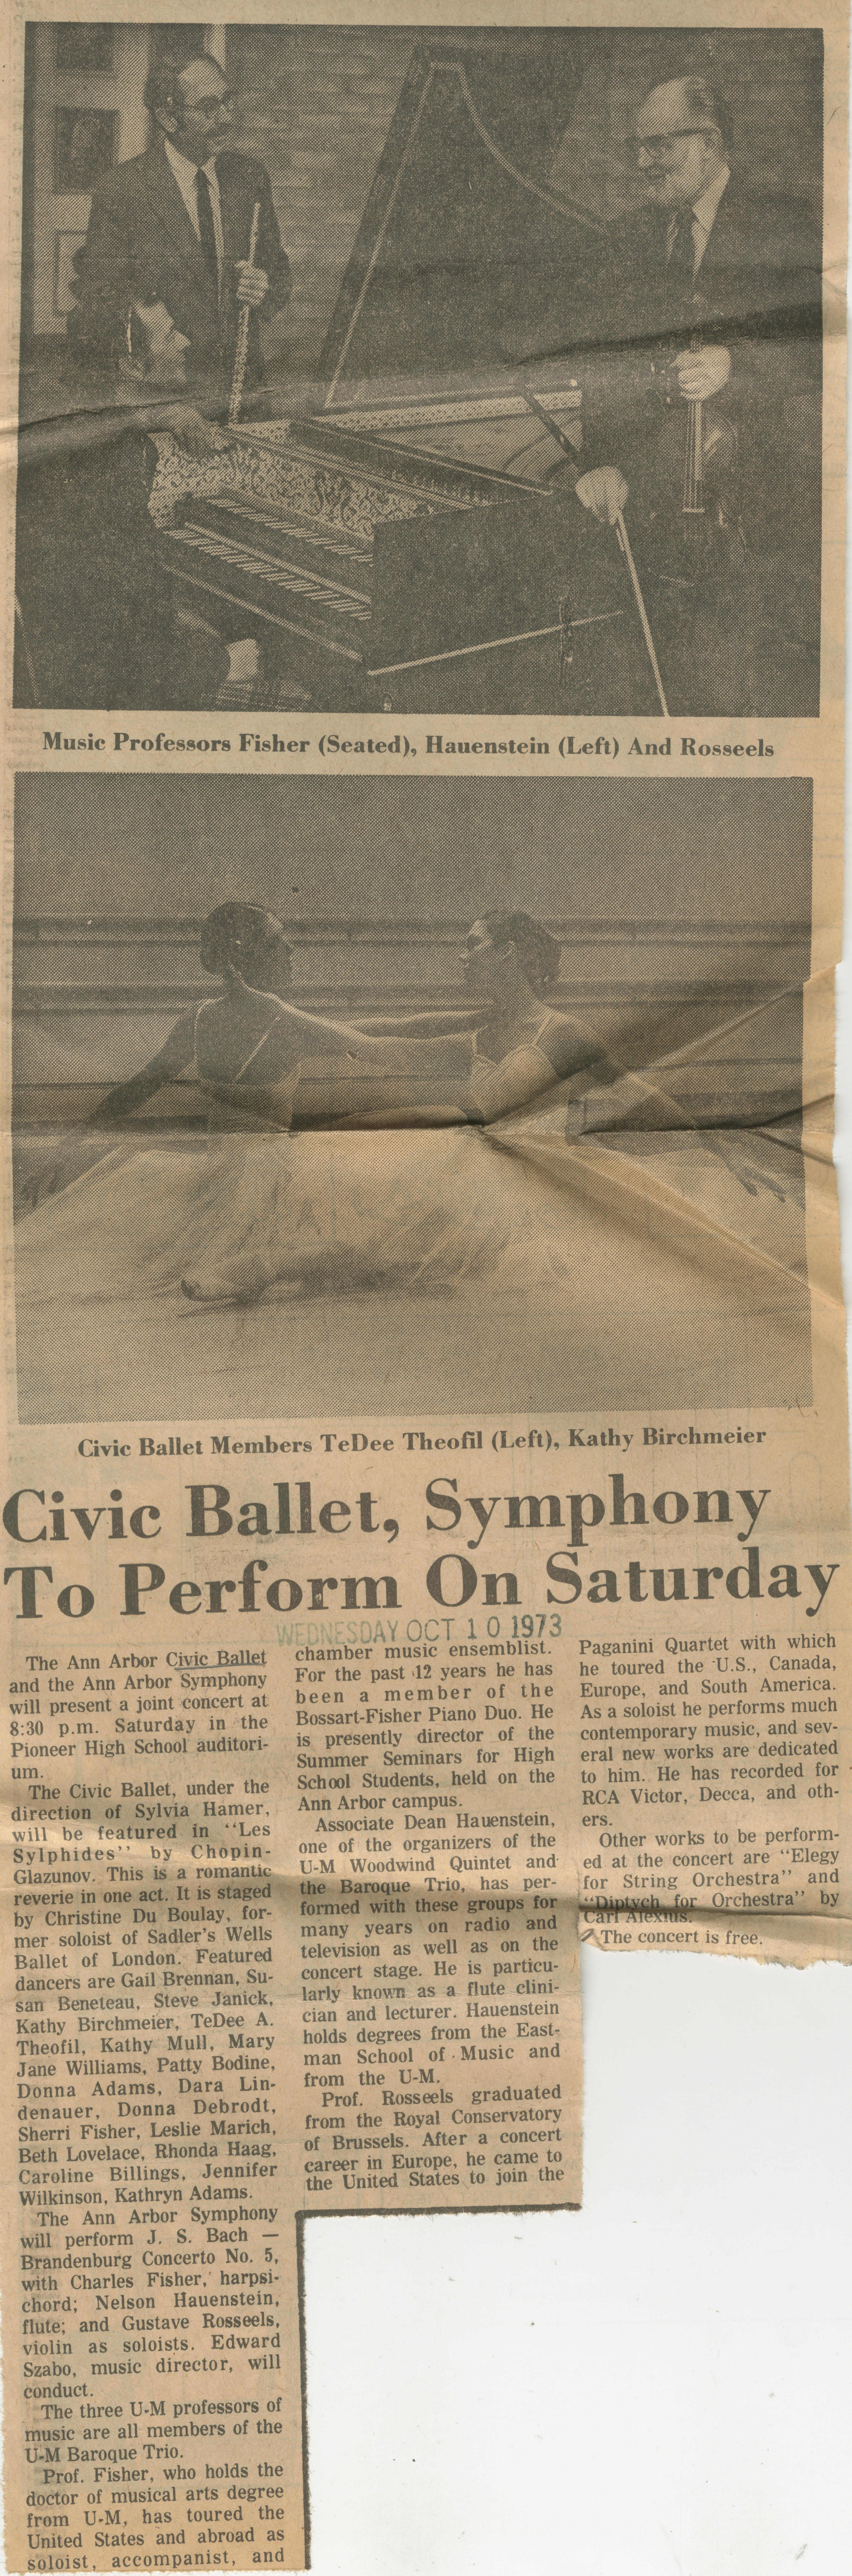 Civic Ballet, Symphony To Perform On Saturday image